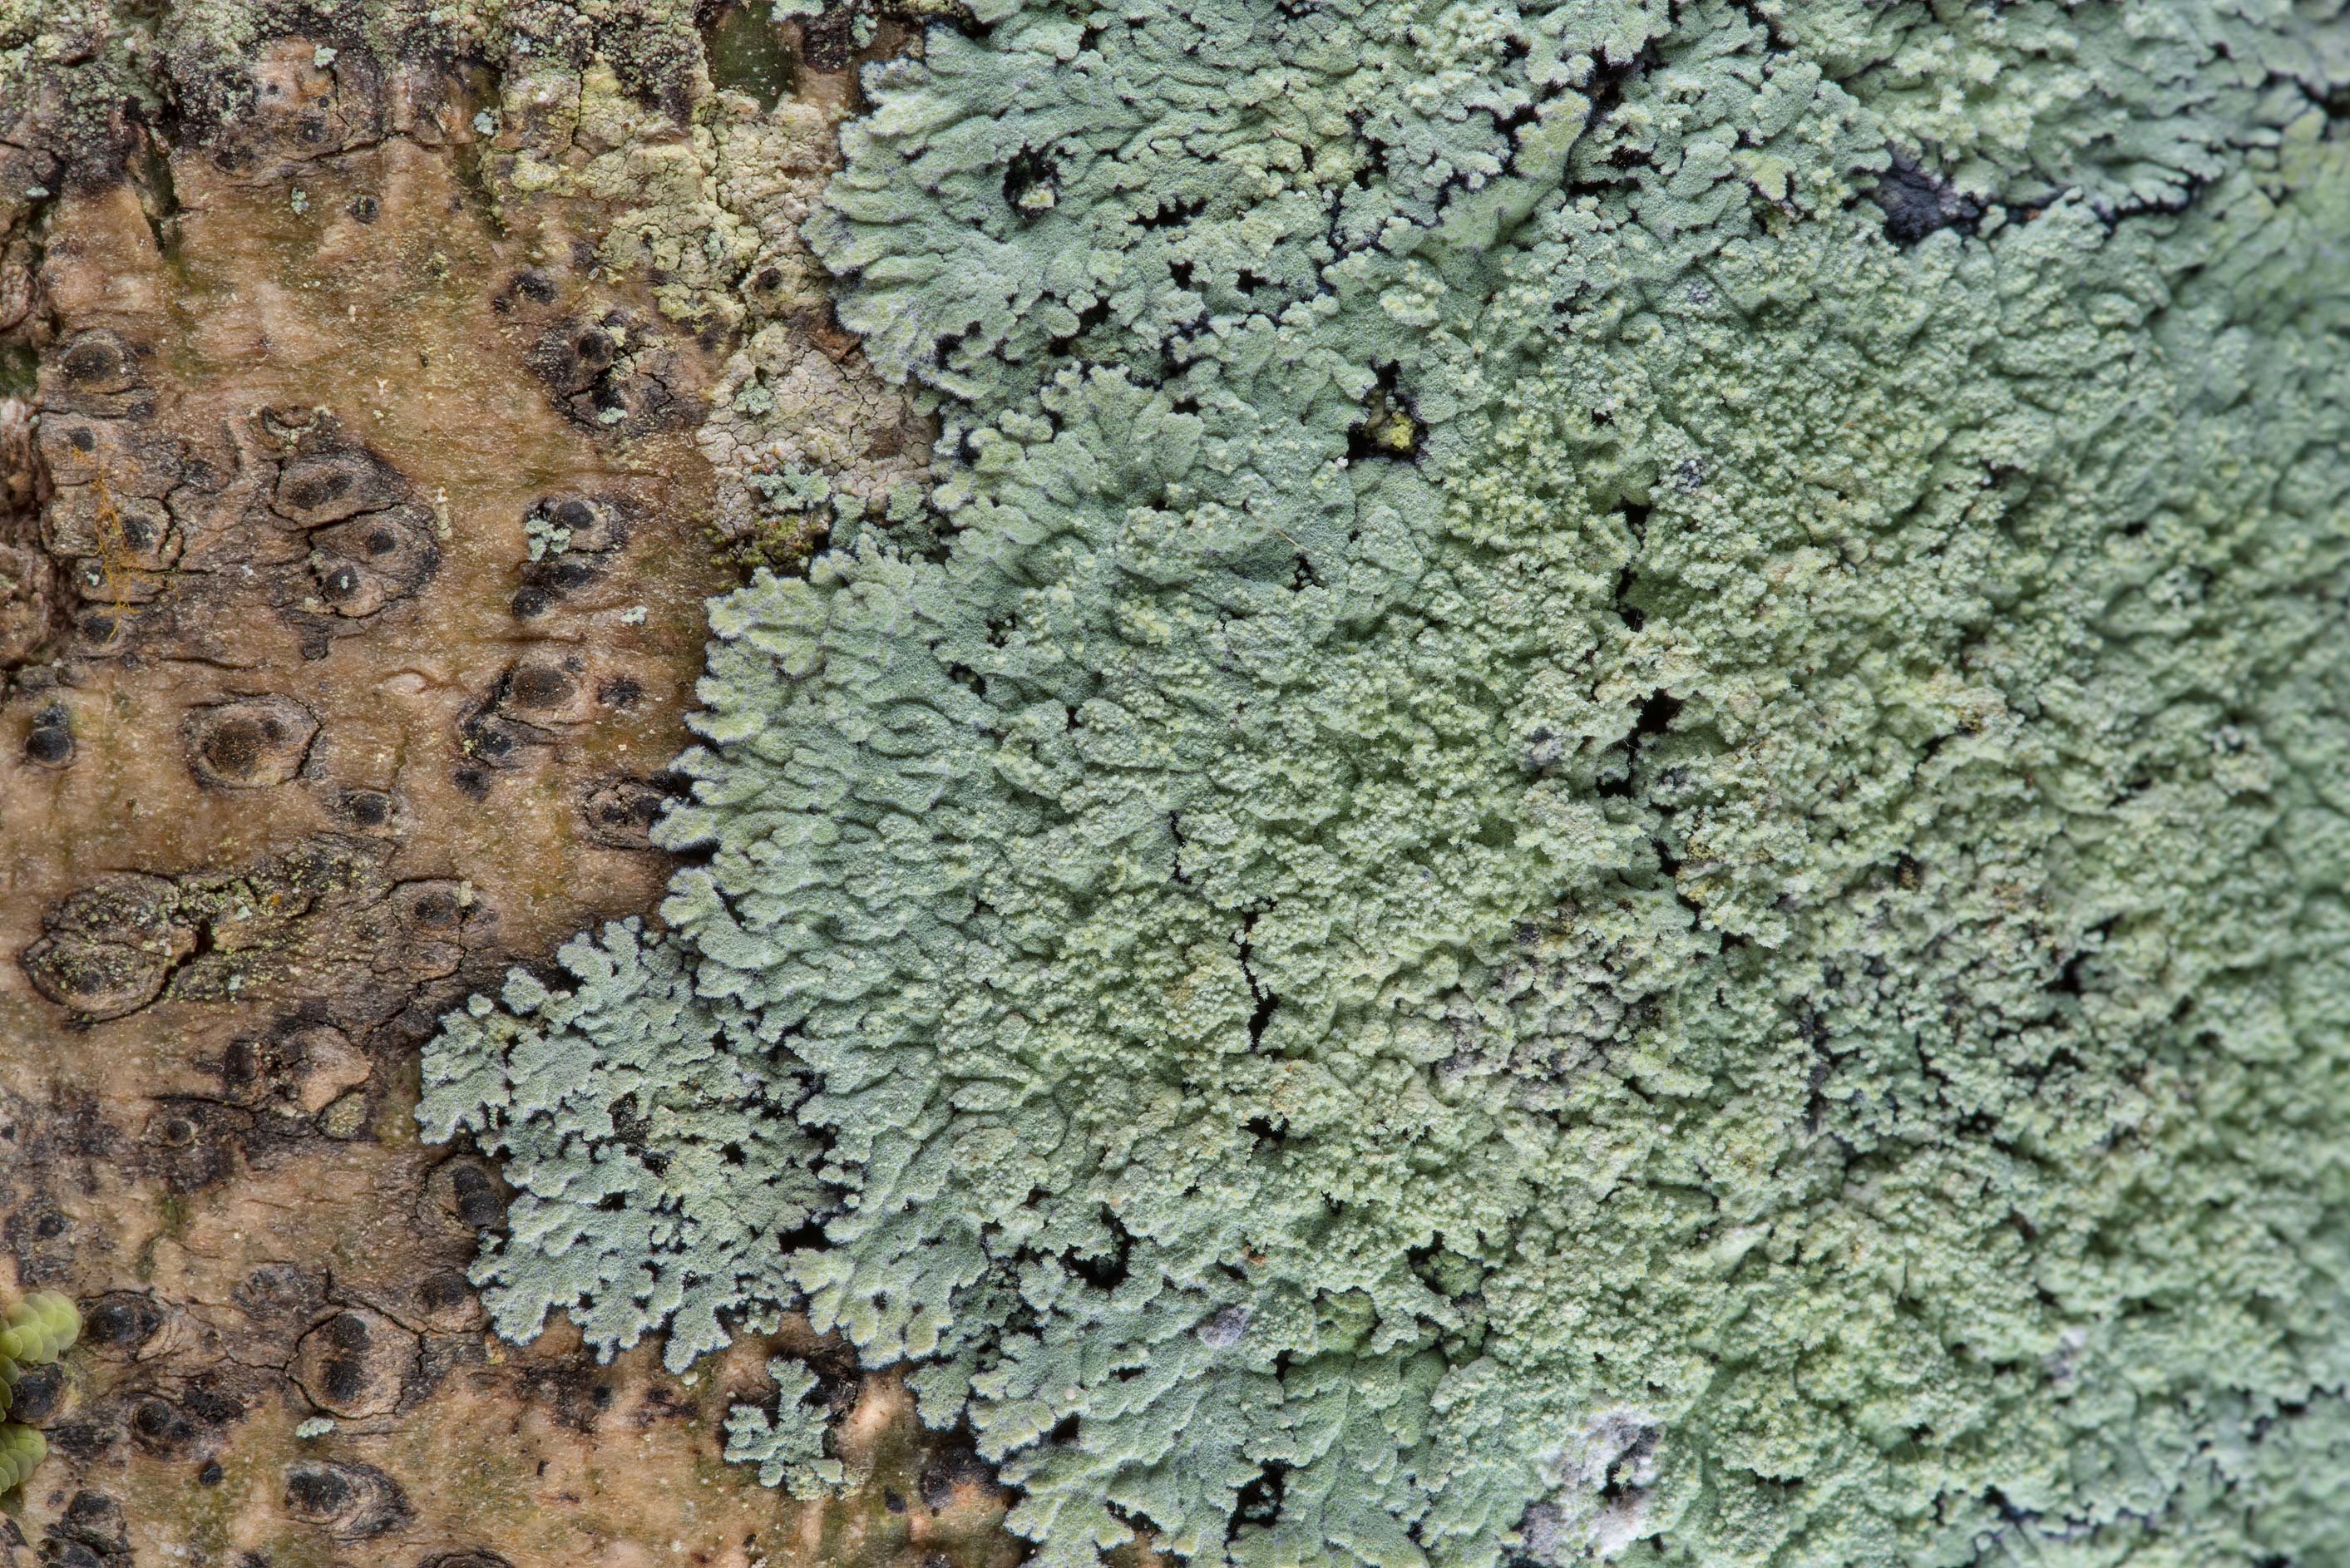 Lobed cotton lichen (Crocynia pyxinoides) with...National Forest. Shepherd, Texas